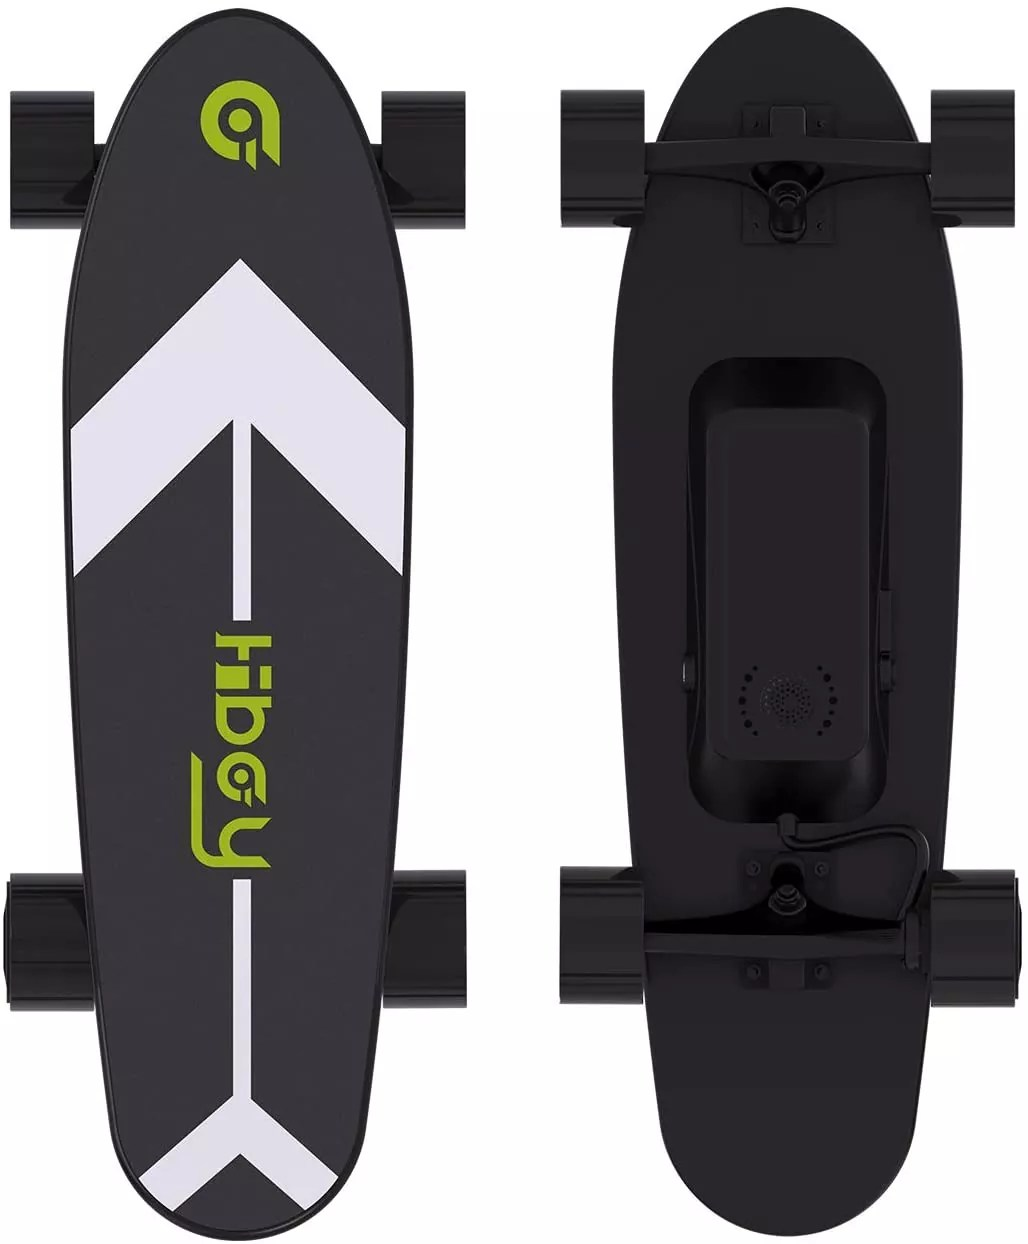 2.	Hiboy Electric Skateboard with Wireless Remote